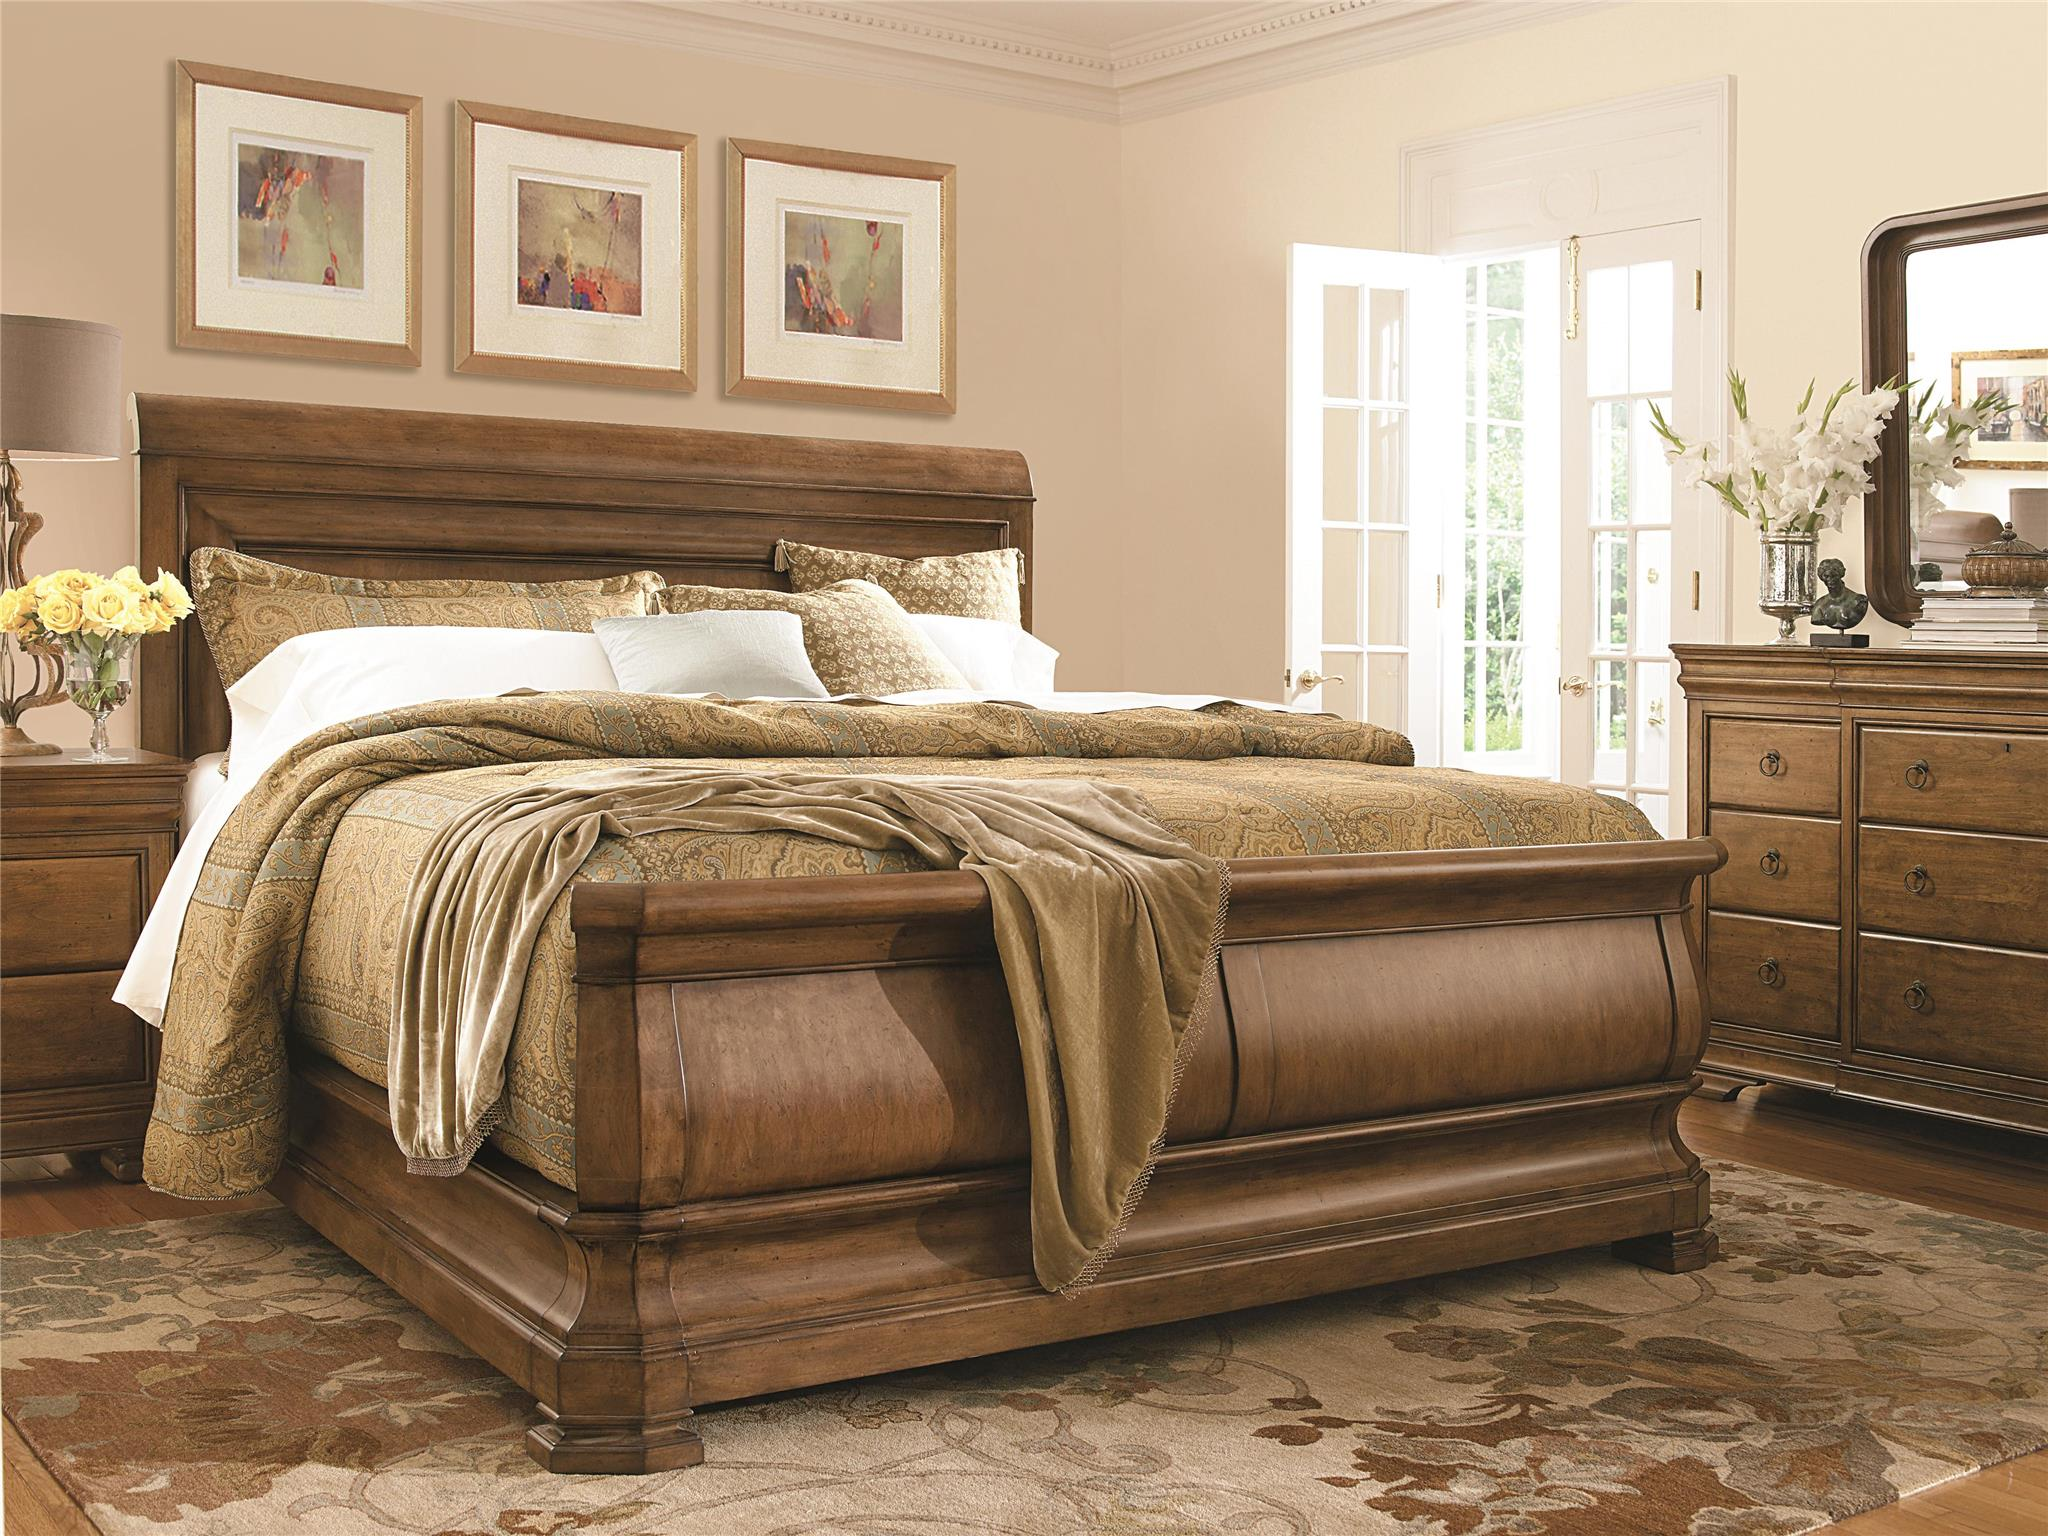 Universal furniture new lou louie p 39 s sleigh bed king - King size sleigh bed bedroom set ...